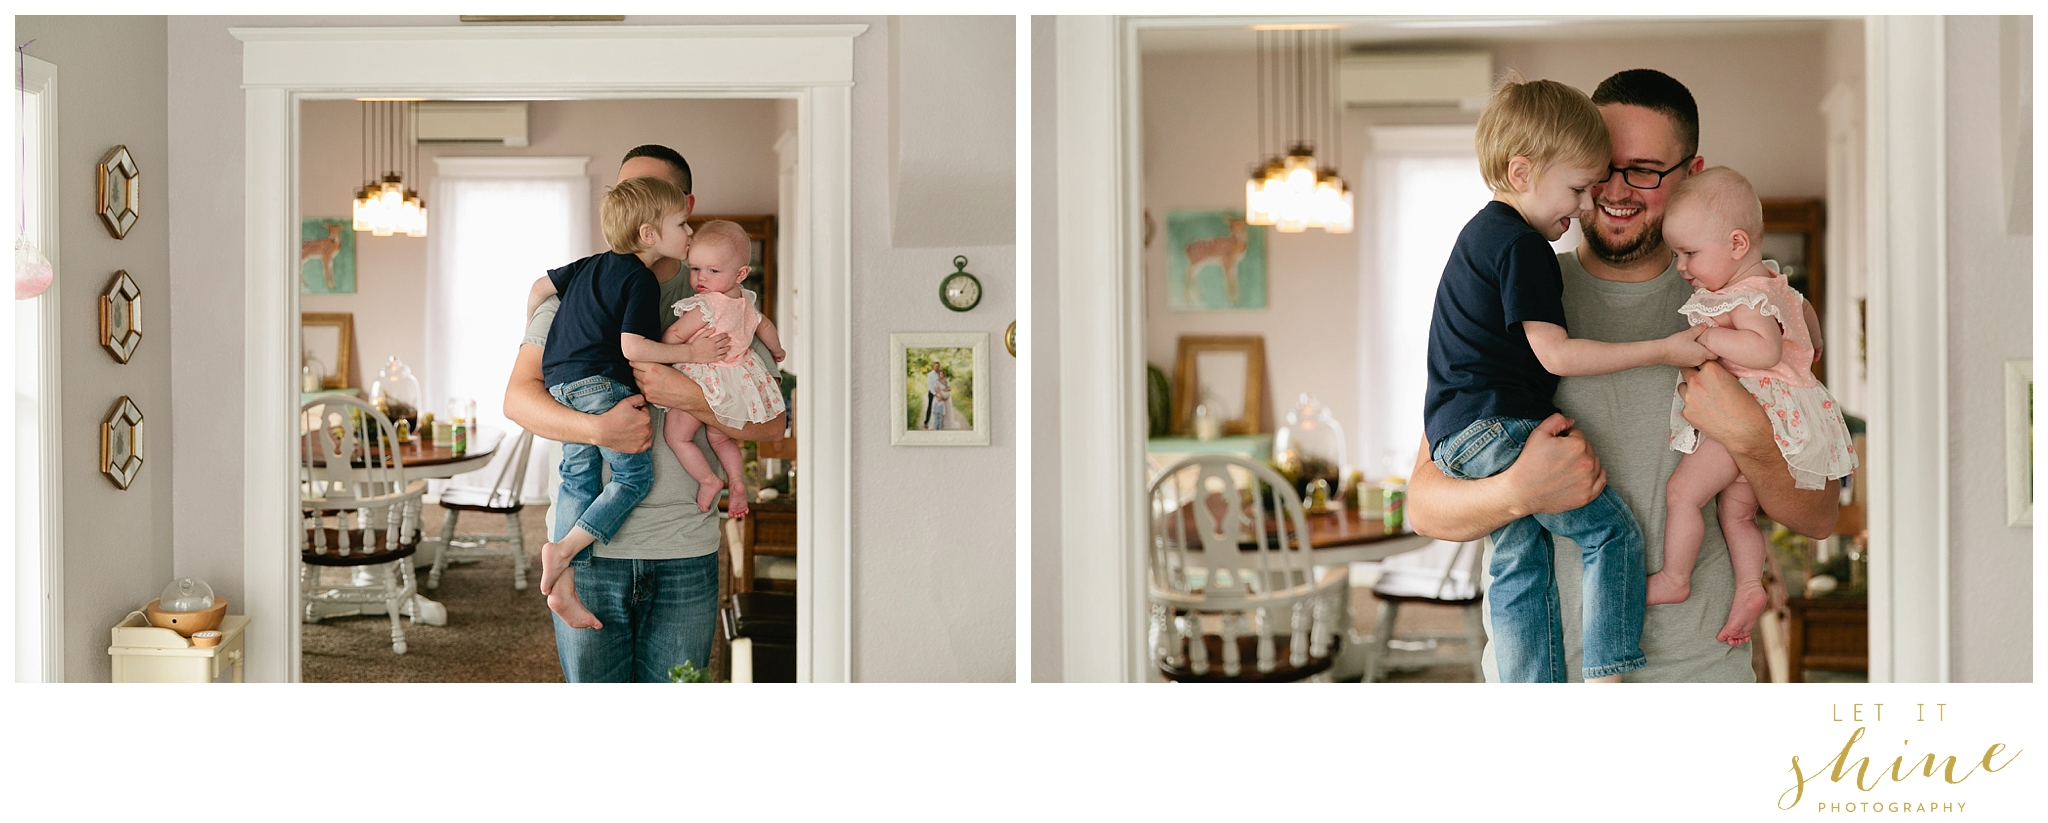 Lifestyle Family In Home Session Photographer Woodford-6745.jpg